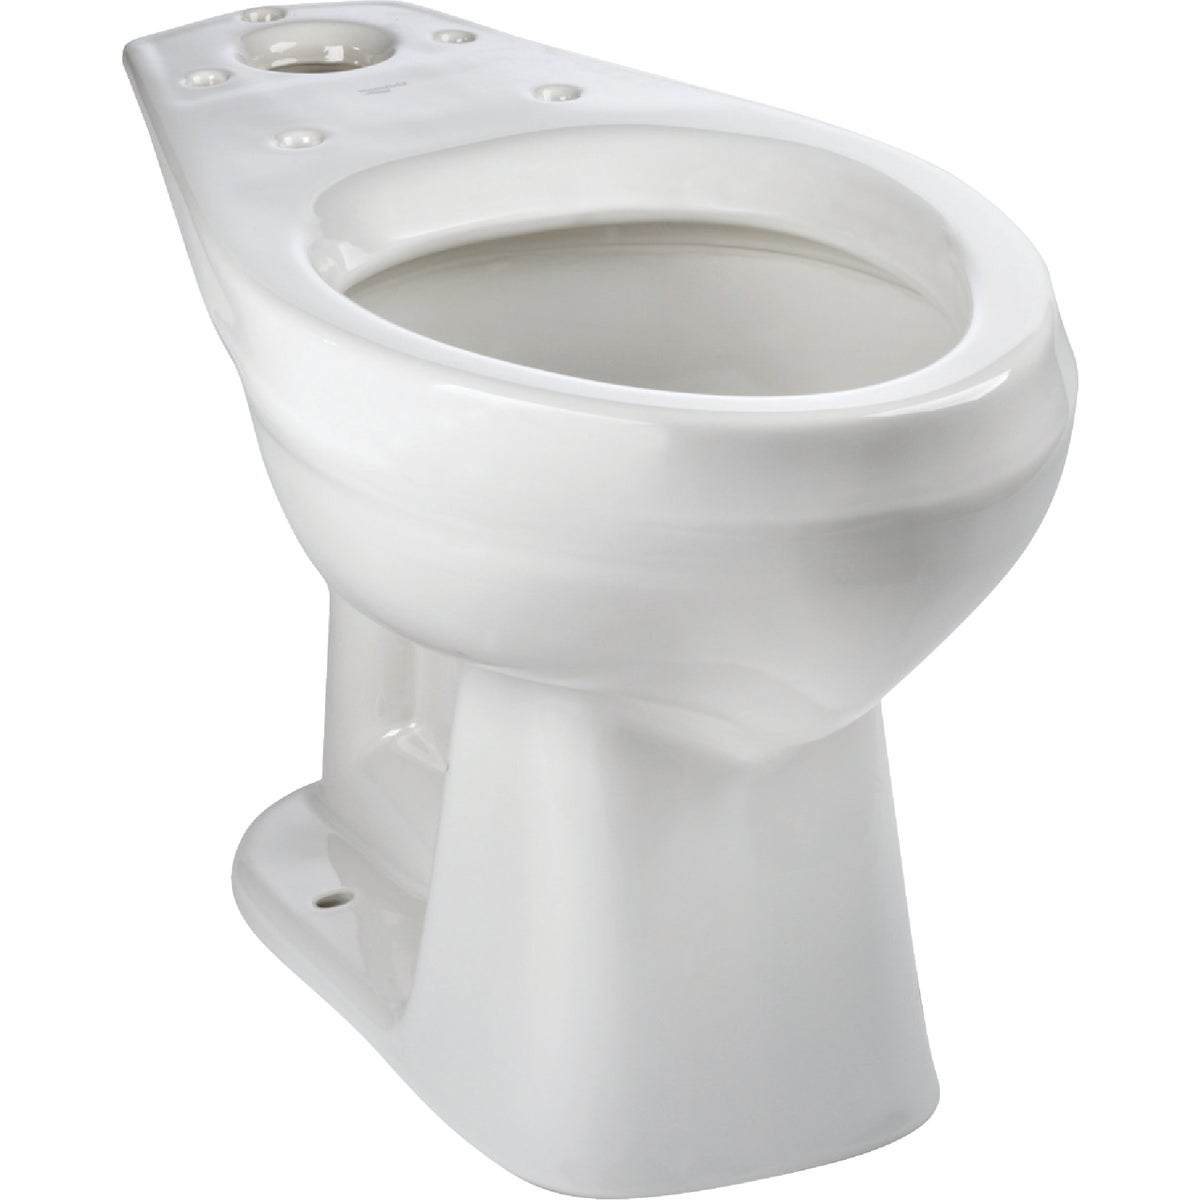 WHITE ADA TOILET BOWL